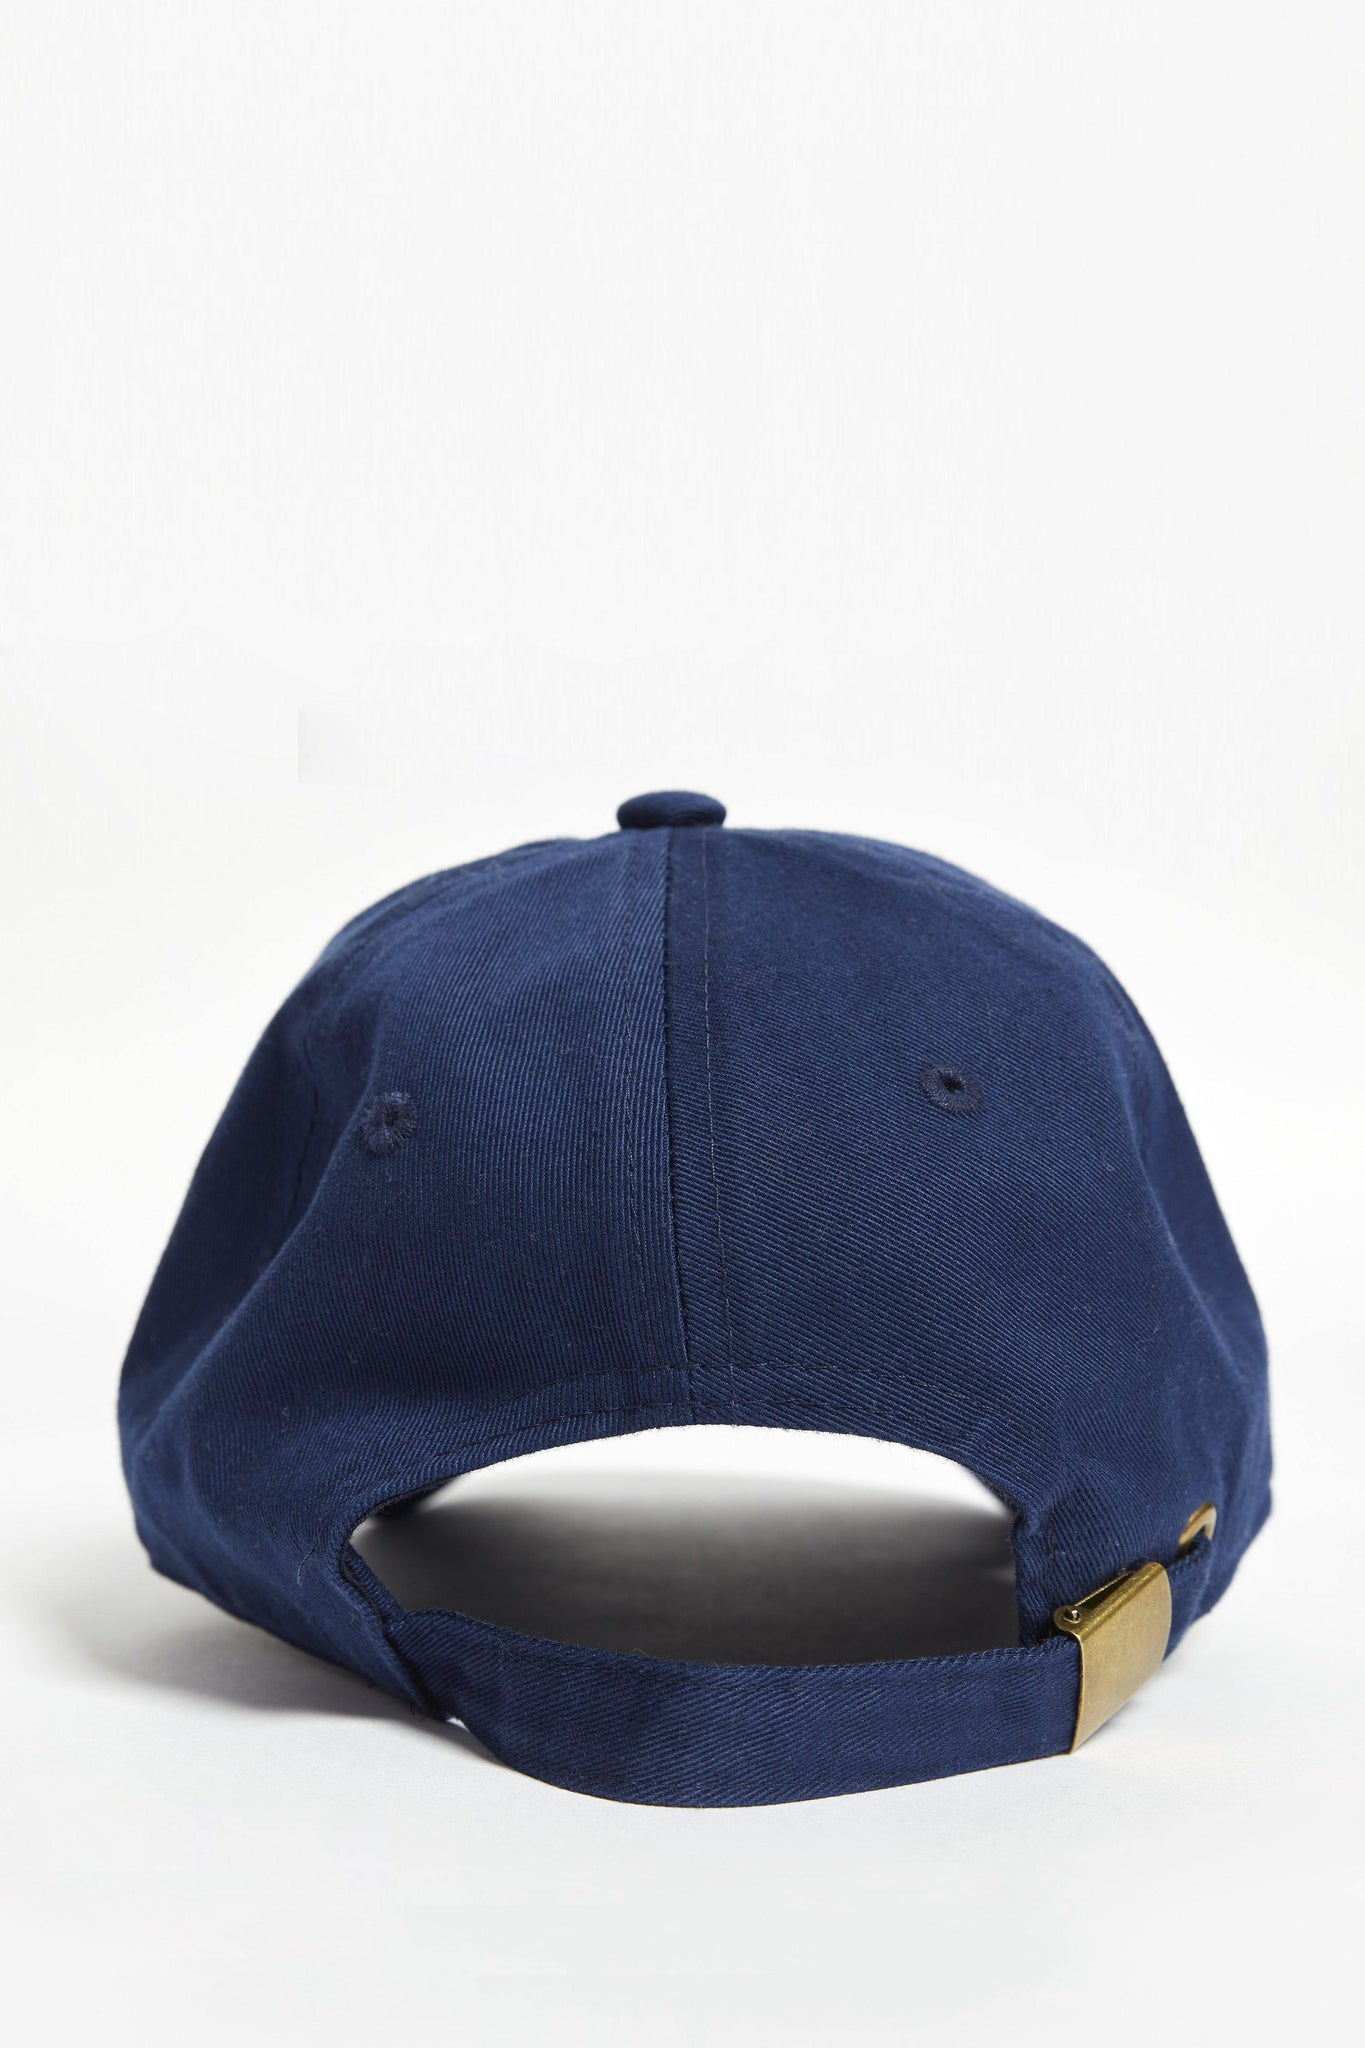 DARK BLUE DAD HAT - Choast